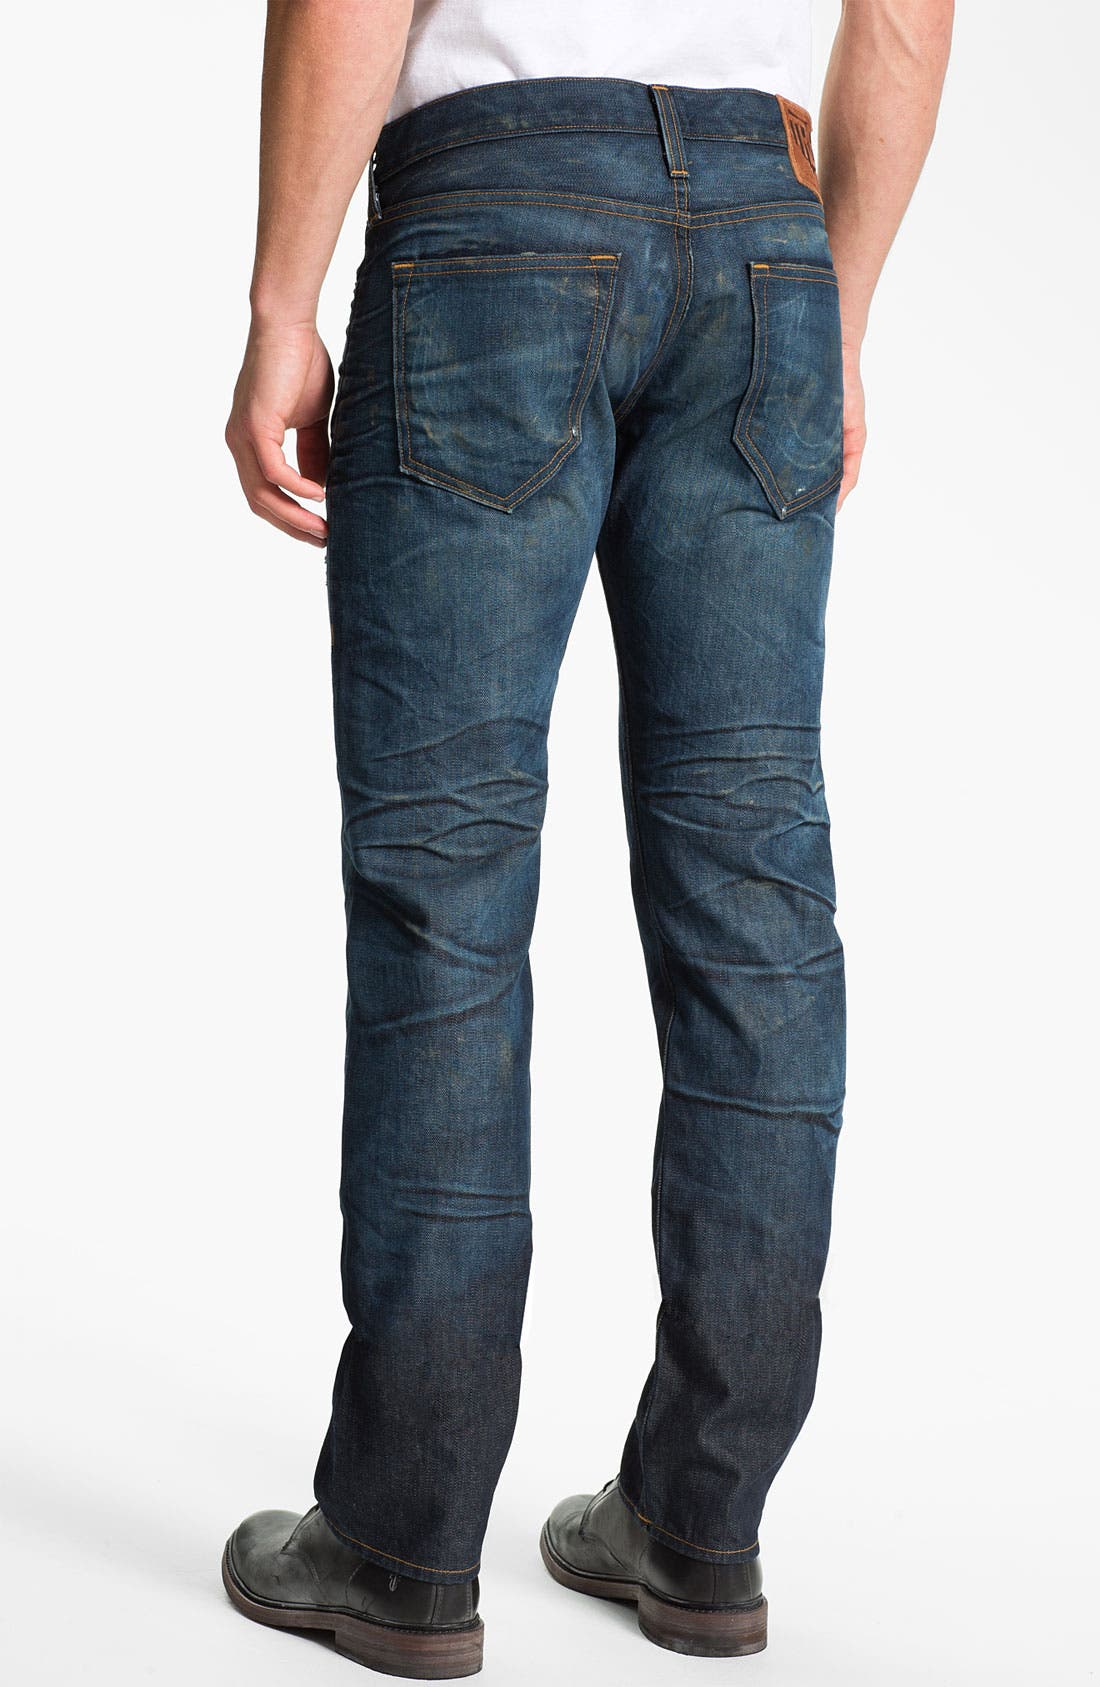 Main Image - True Religion Brand Jeans 'Geno 1971' Slim Straight Leg Jeans (Hideout)